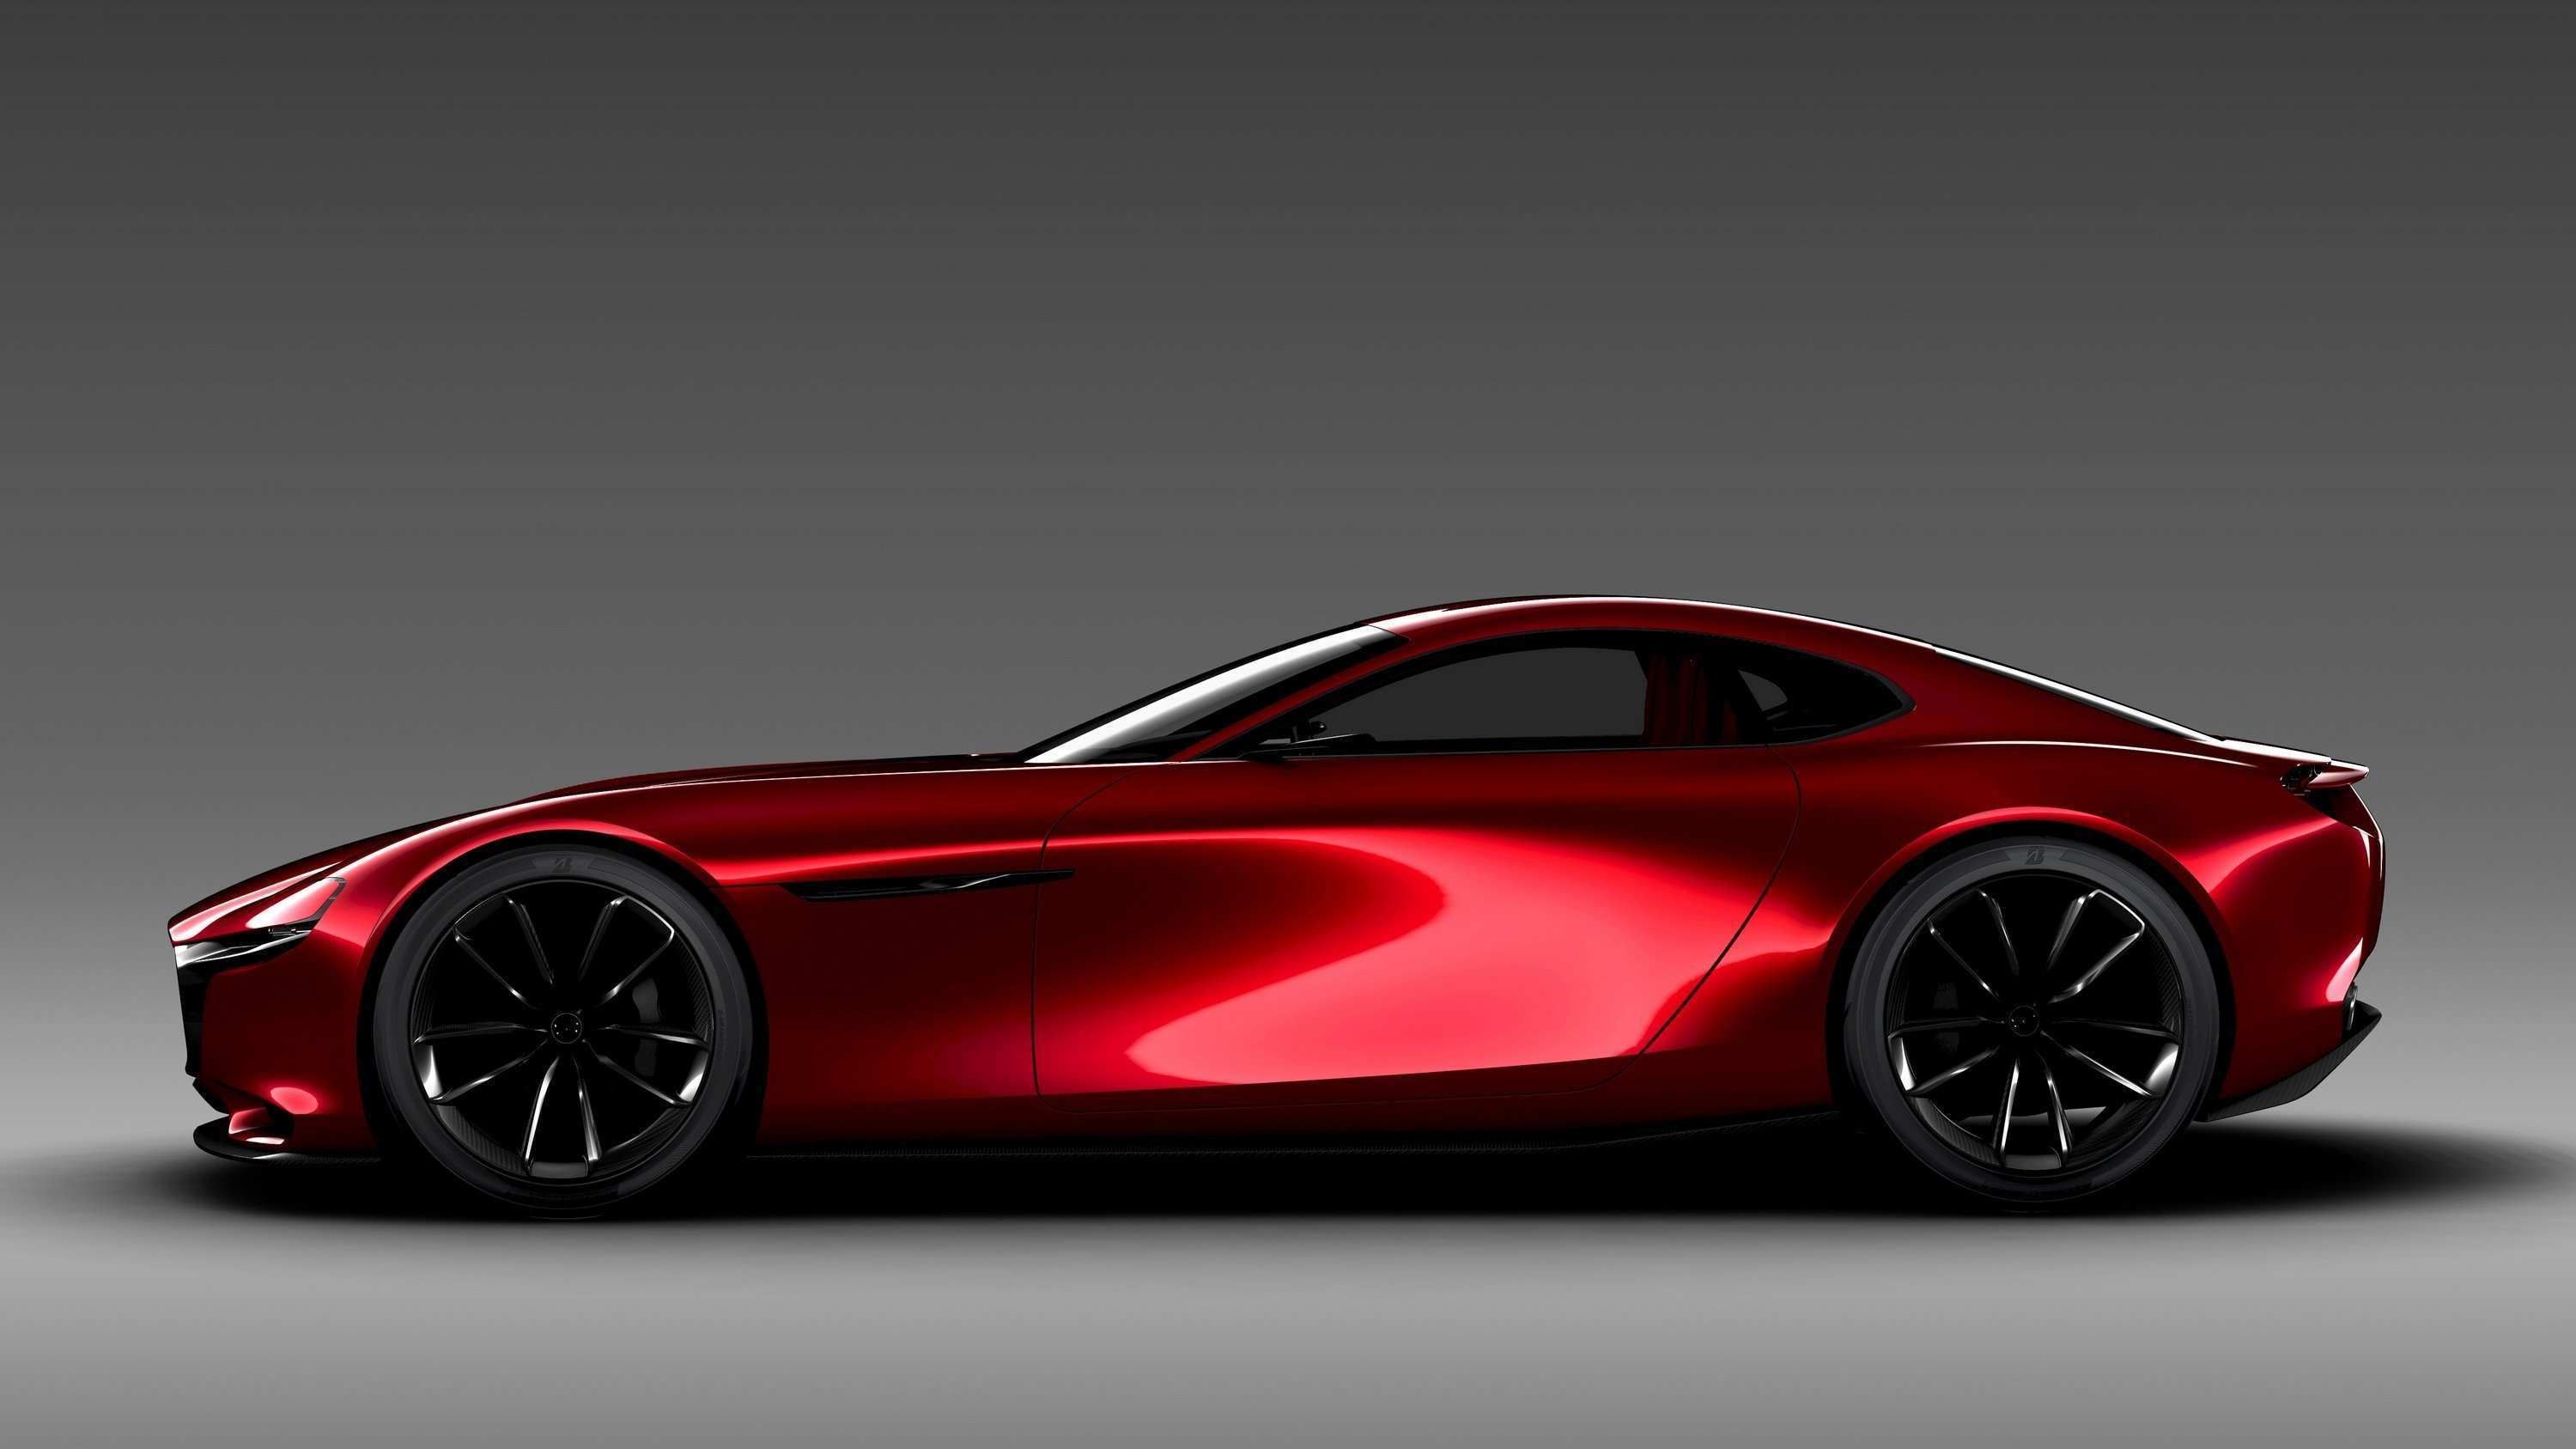 63 The 2020 Mazda RX7s Configurations